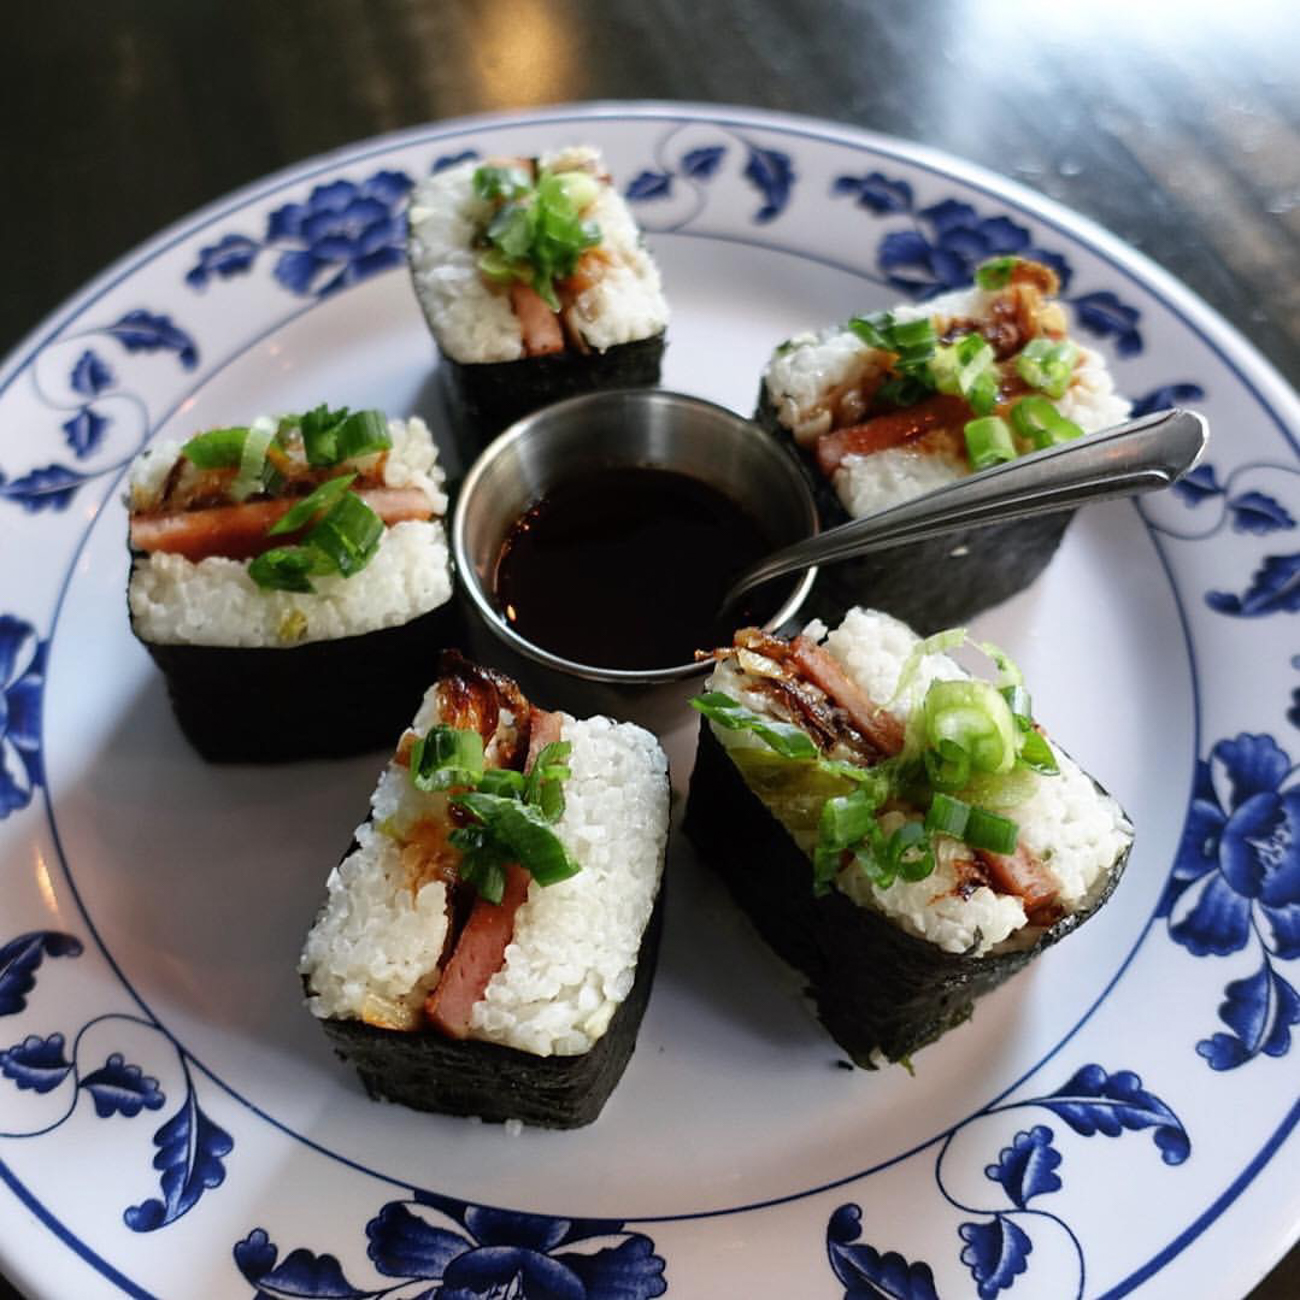 Musubi: spam, rice, caramelized onions, and gojuchang sauce / Image courtesy of Quan Hapa // Published: 1.10.17